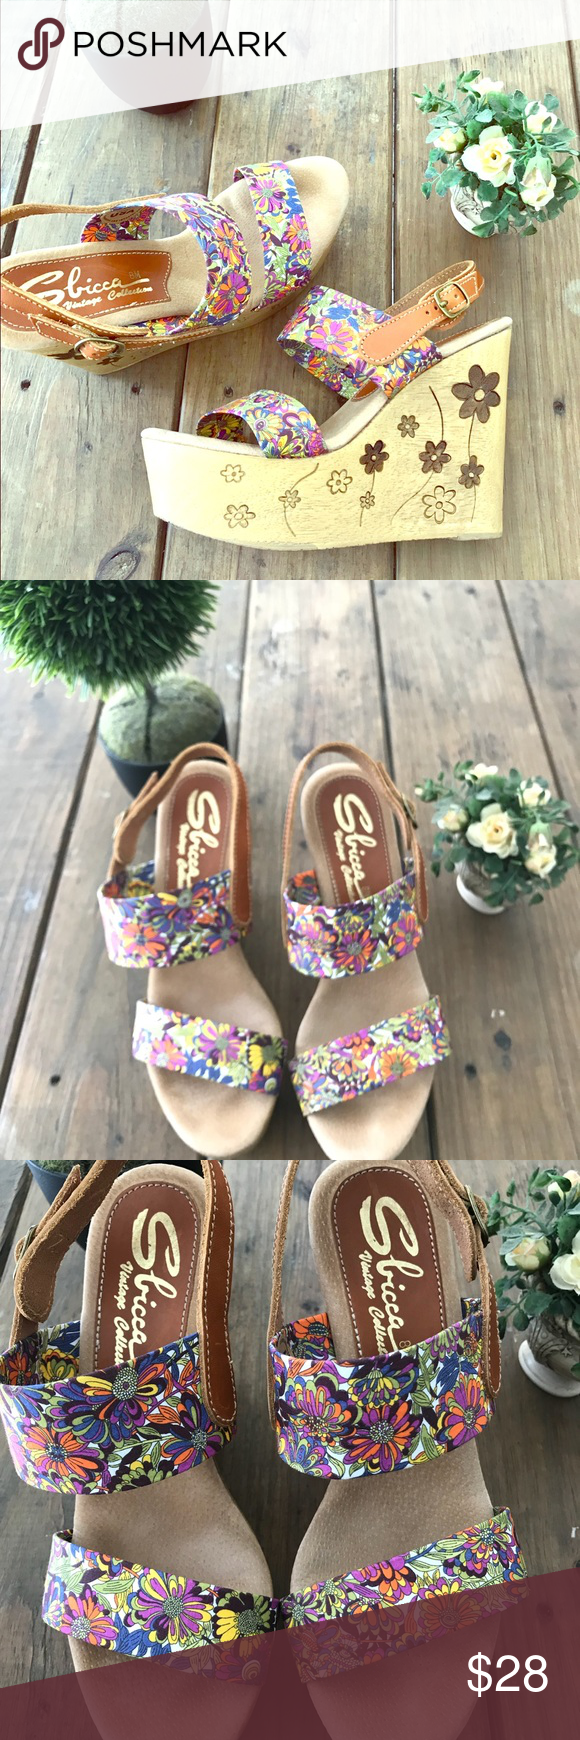 7ee8b3789 Spotted while shopping on Poshmark  SBICCA wedge sandals with floral design  Size 8M!  poshmark  fashion  shopping  style  Sbicca  Shoes